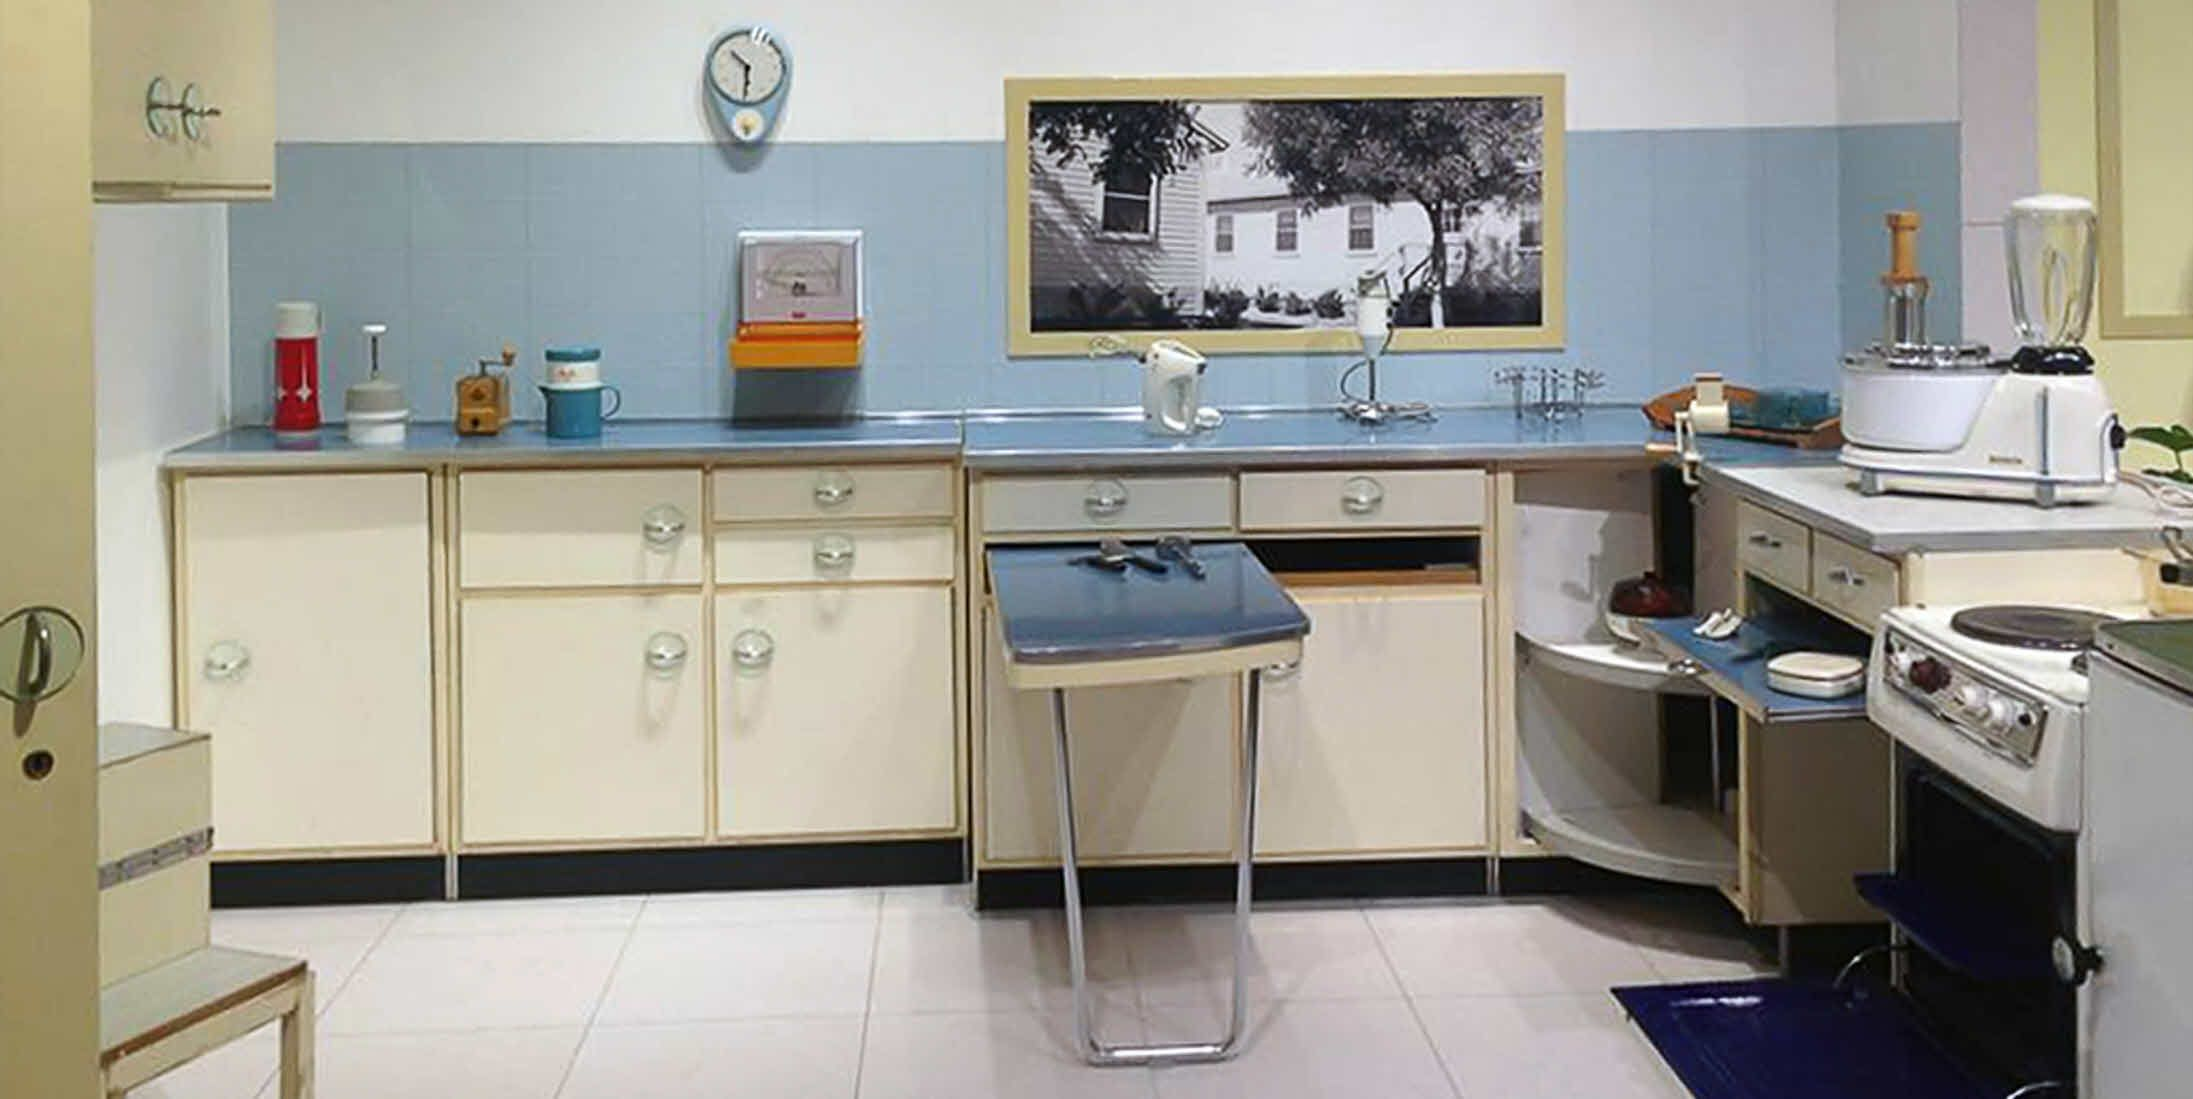 1950s Kitchen Design Kitchen Appliances 1950s Kitchen Appliances Fences Kitchens